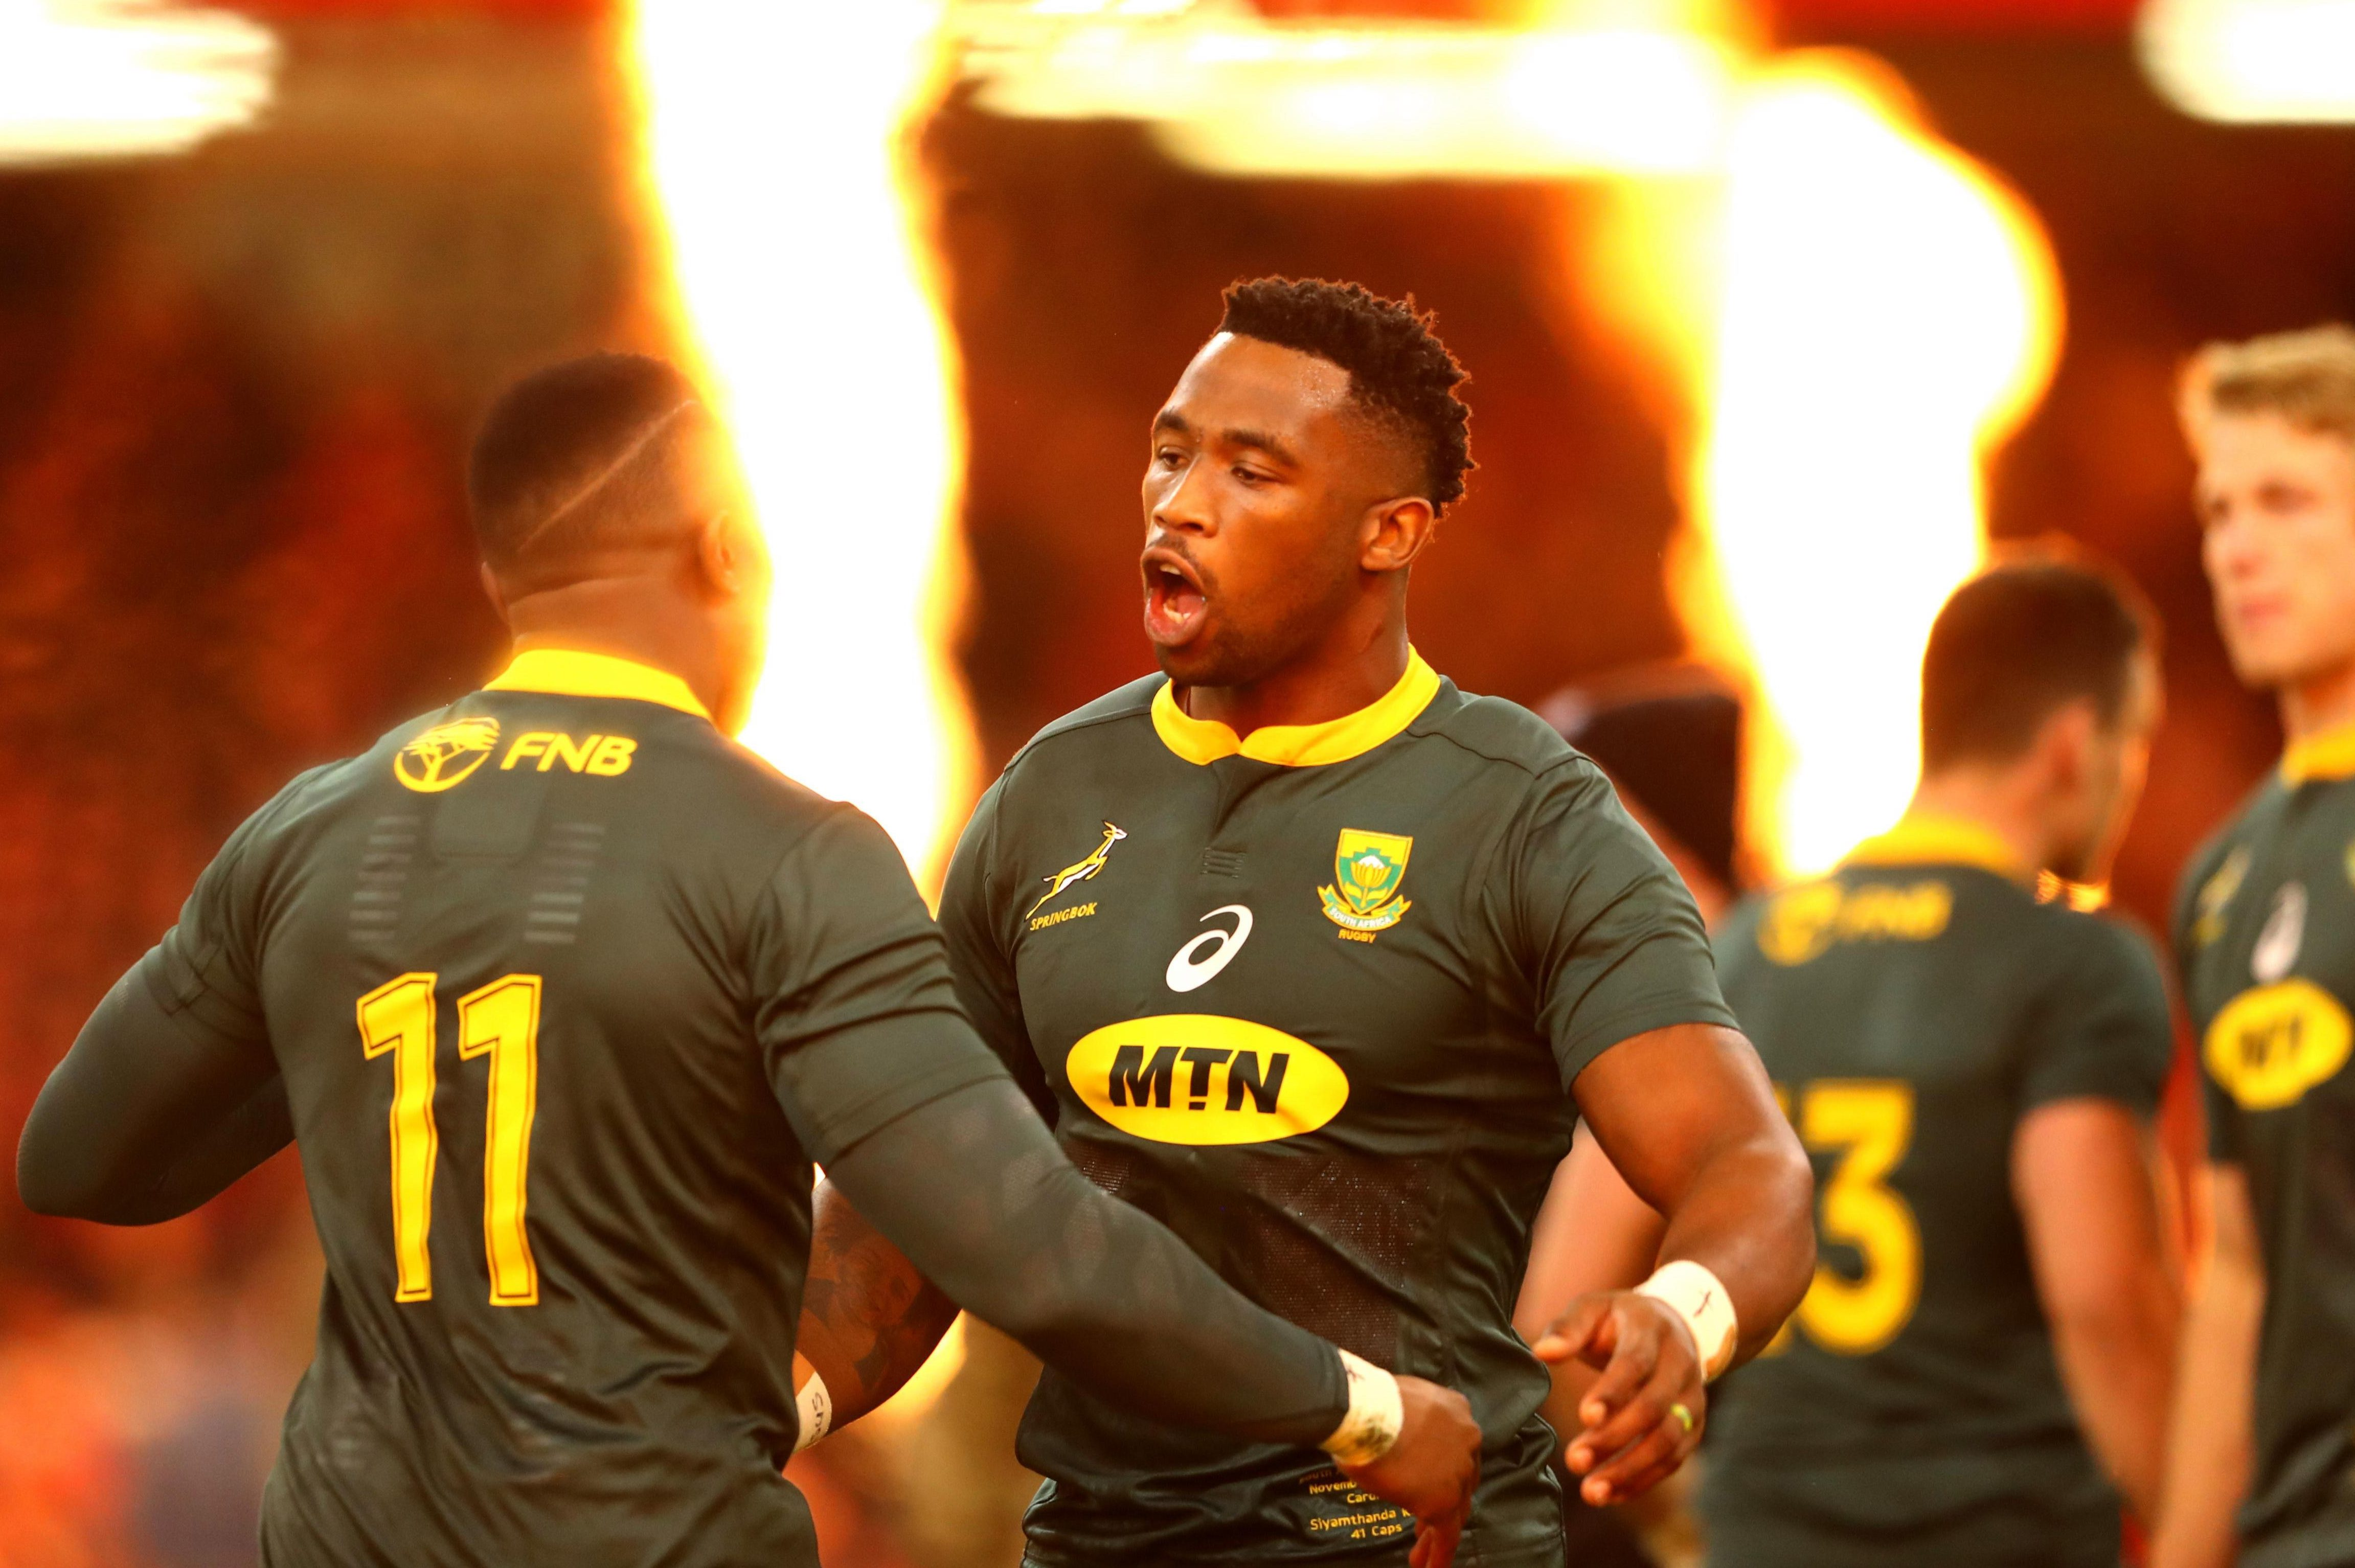 The incident happened on the eve of South Africa's defeat to Wales